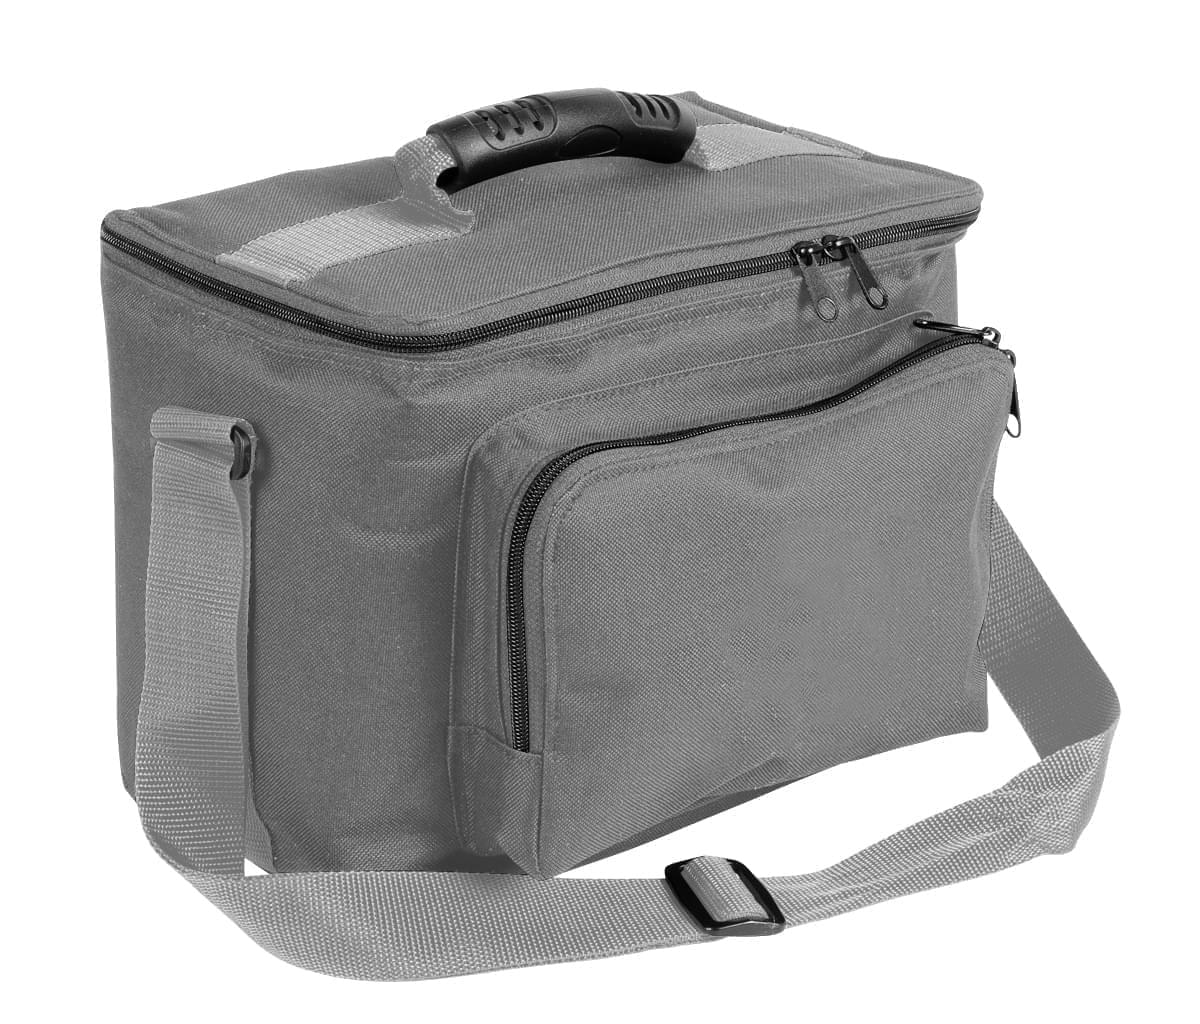 USA Made Nylon Poly Lunch Coolers, Grey-Grey, 11001161-A1U